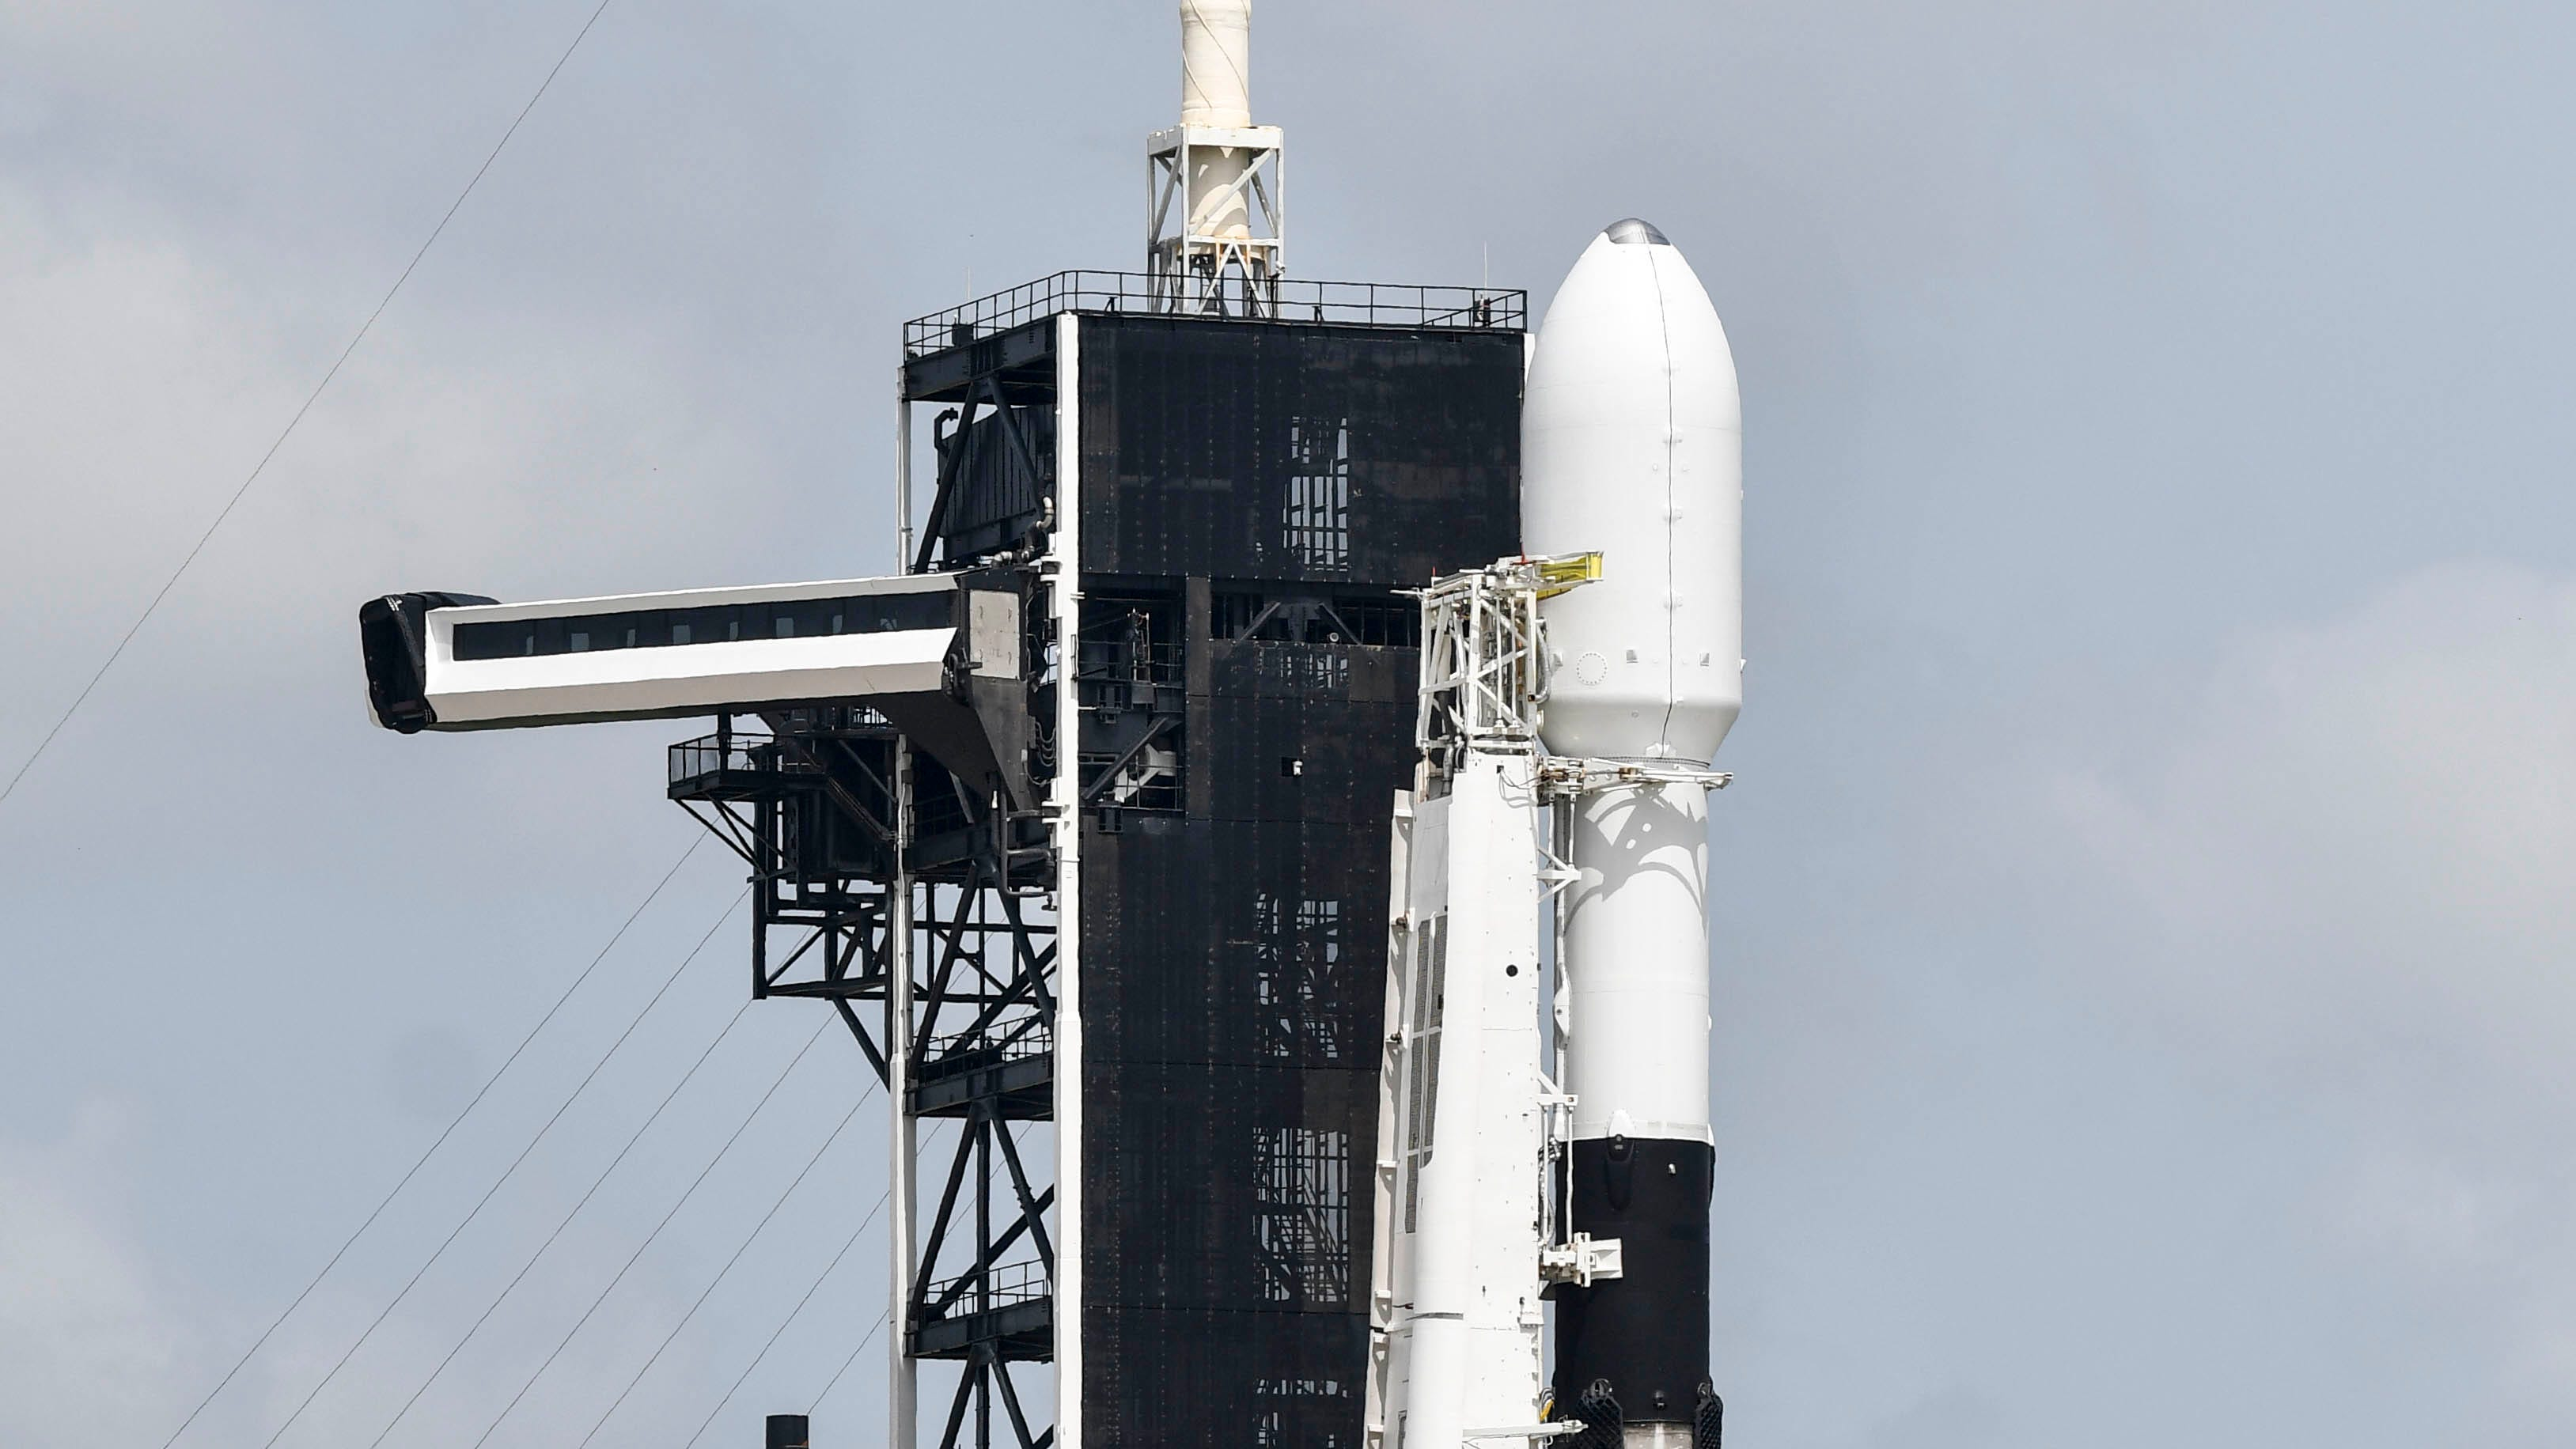 A SpaceX Falcon 9 remains on Pad 39A at Kennedy Sp